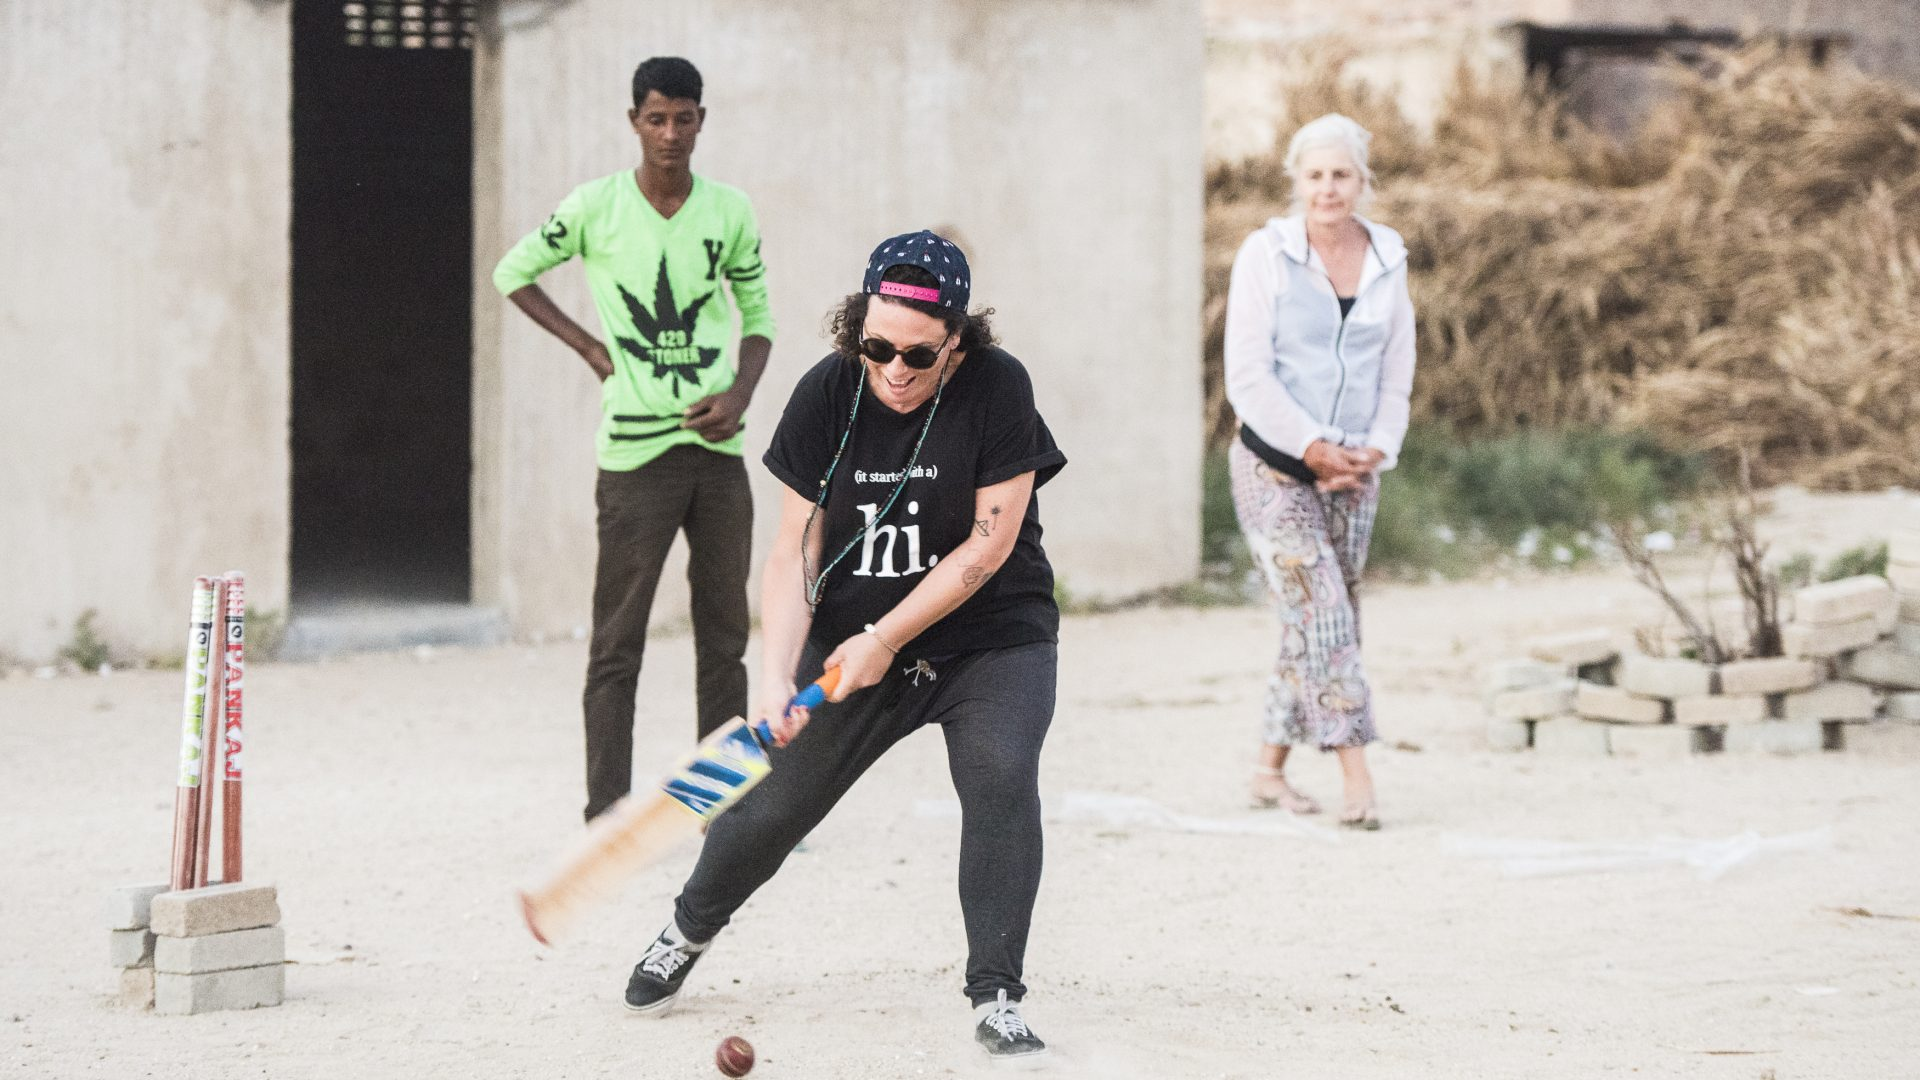 Responsible photography: A tourist plays cricket with some locals in India.